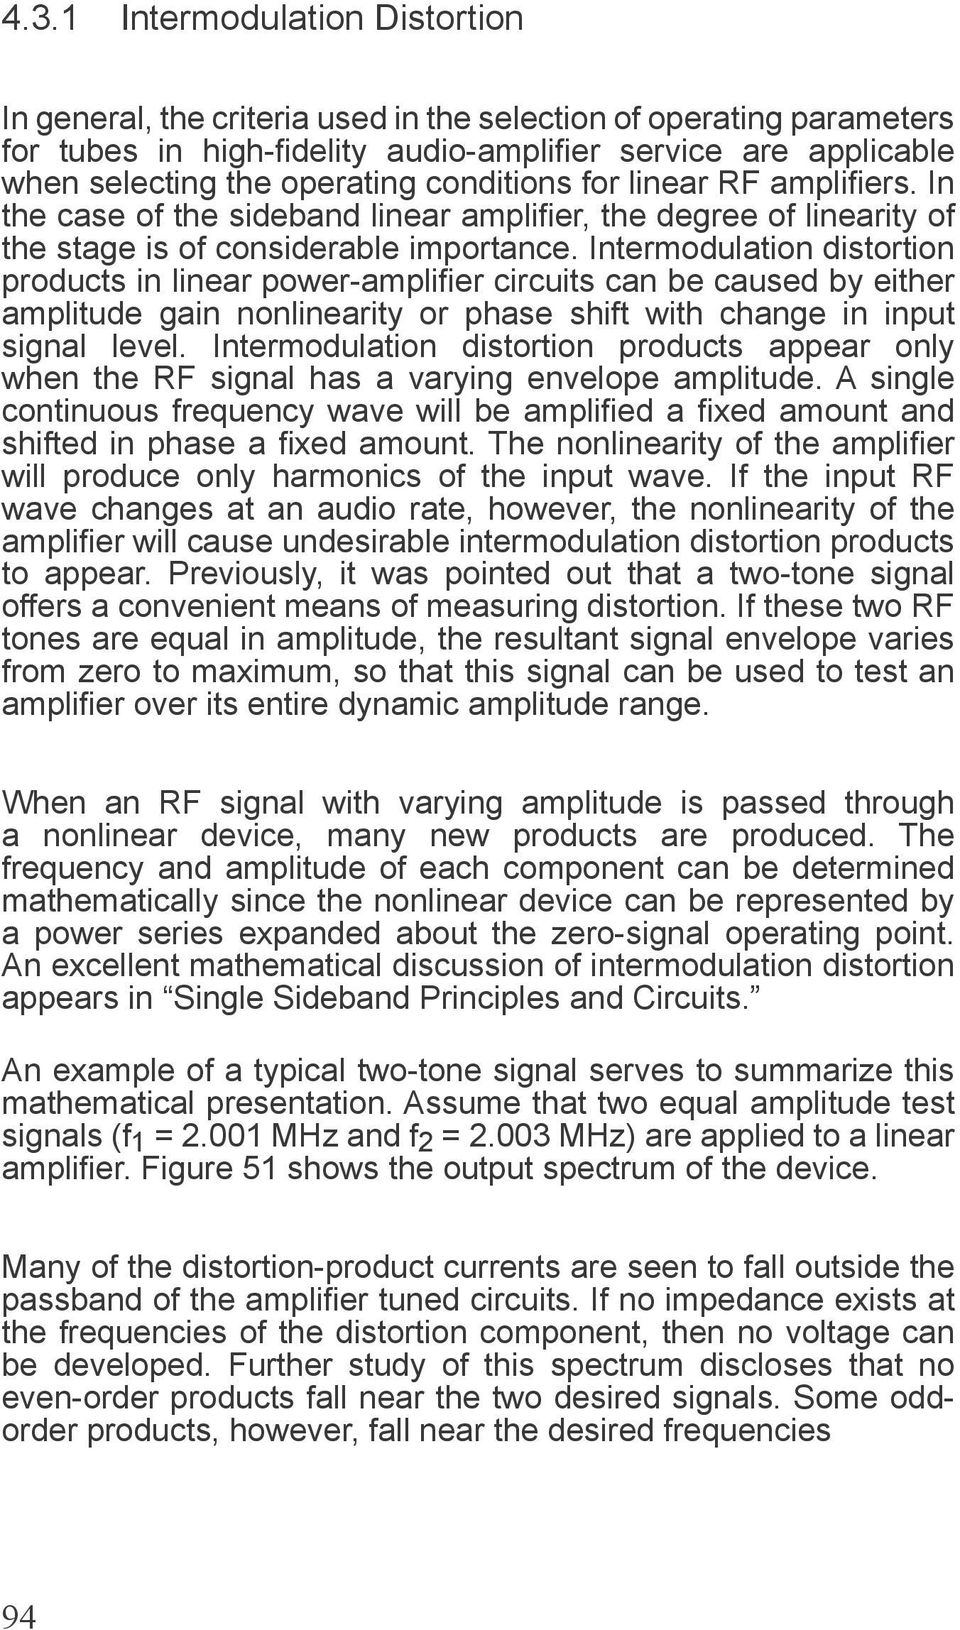 LINEAR AMPLIFIER AND SINGLE SIDEBAND SERVICE - PDF